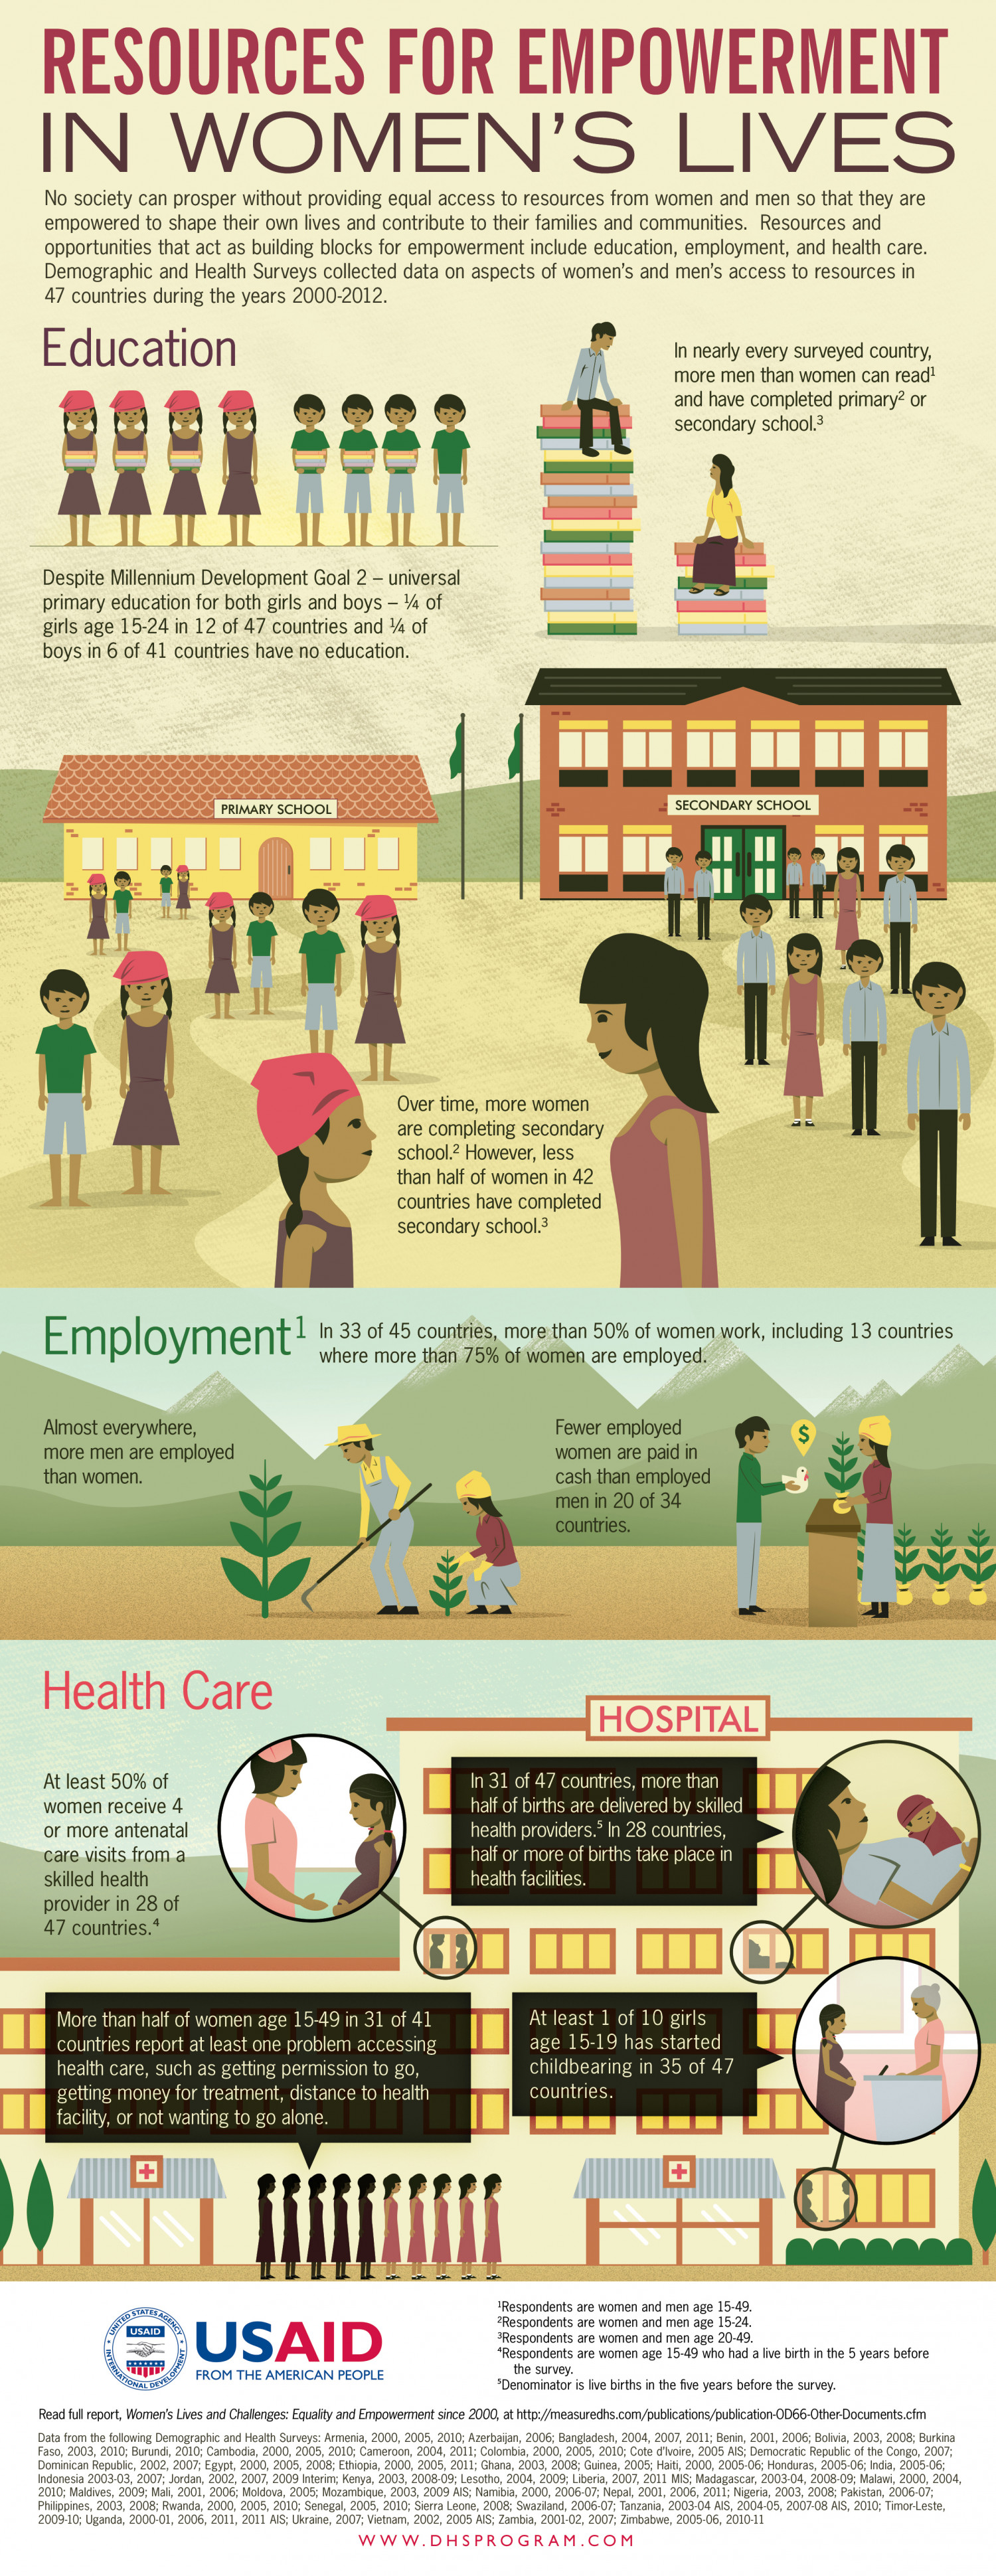 Resources for Empowerment in Women's Lives Infographic